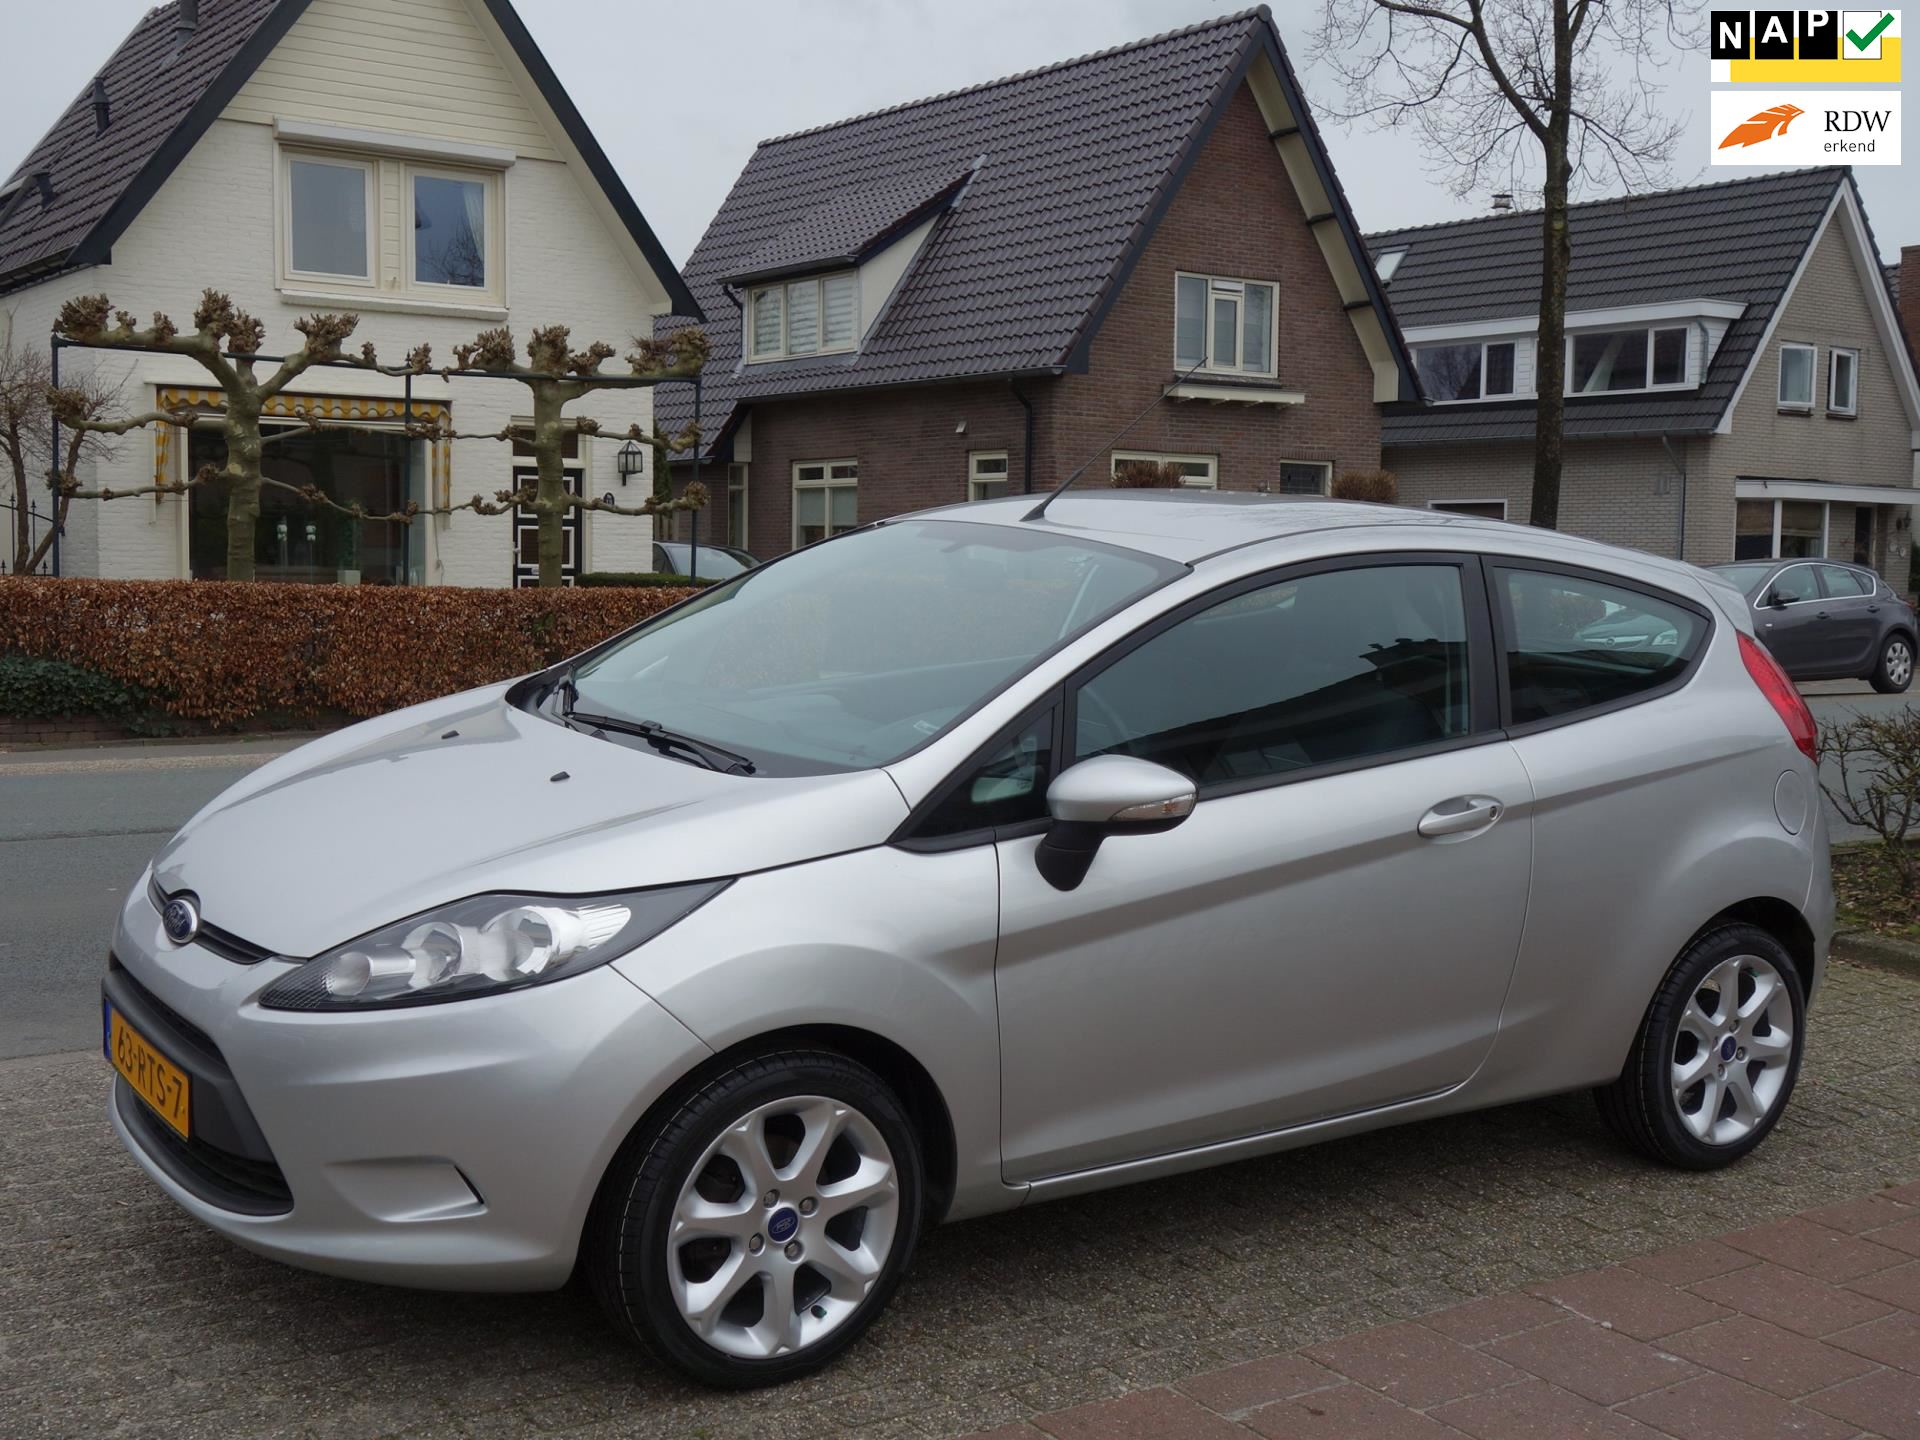 Ford Fiesta occasion - De Vries Automotive Apeldoorn